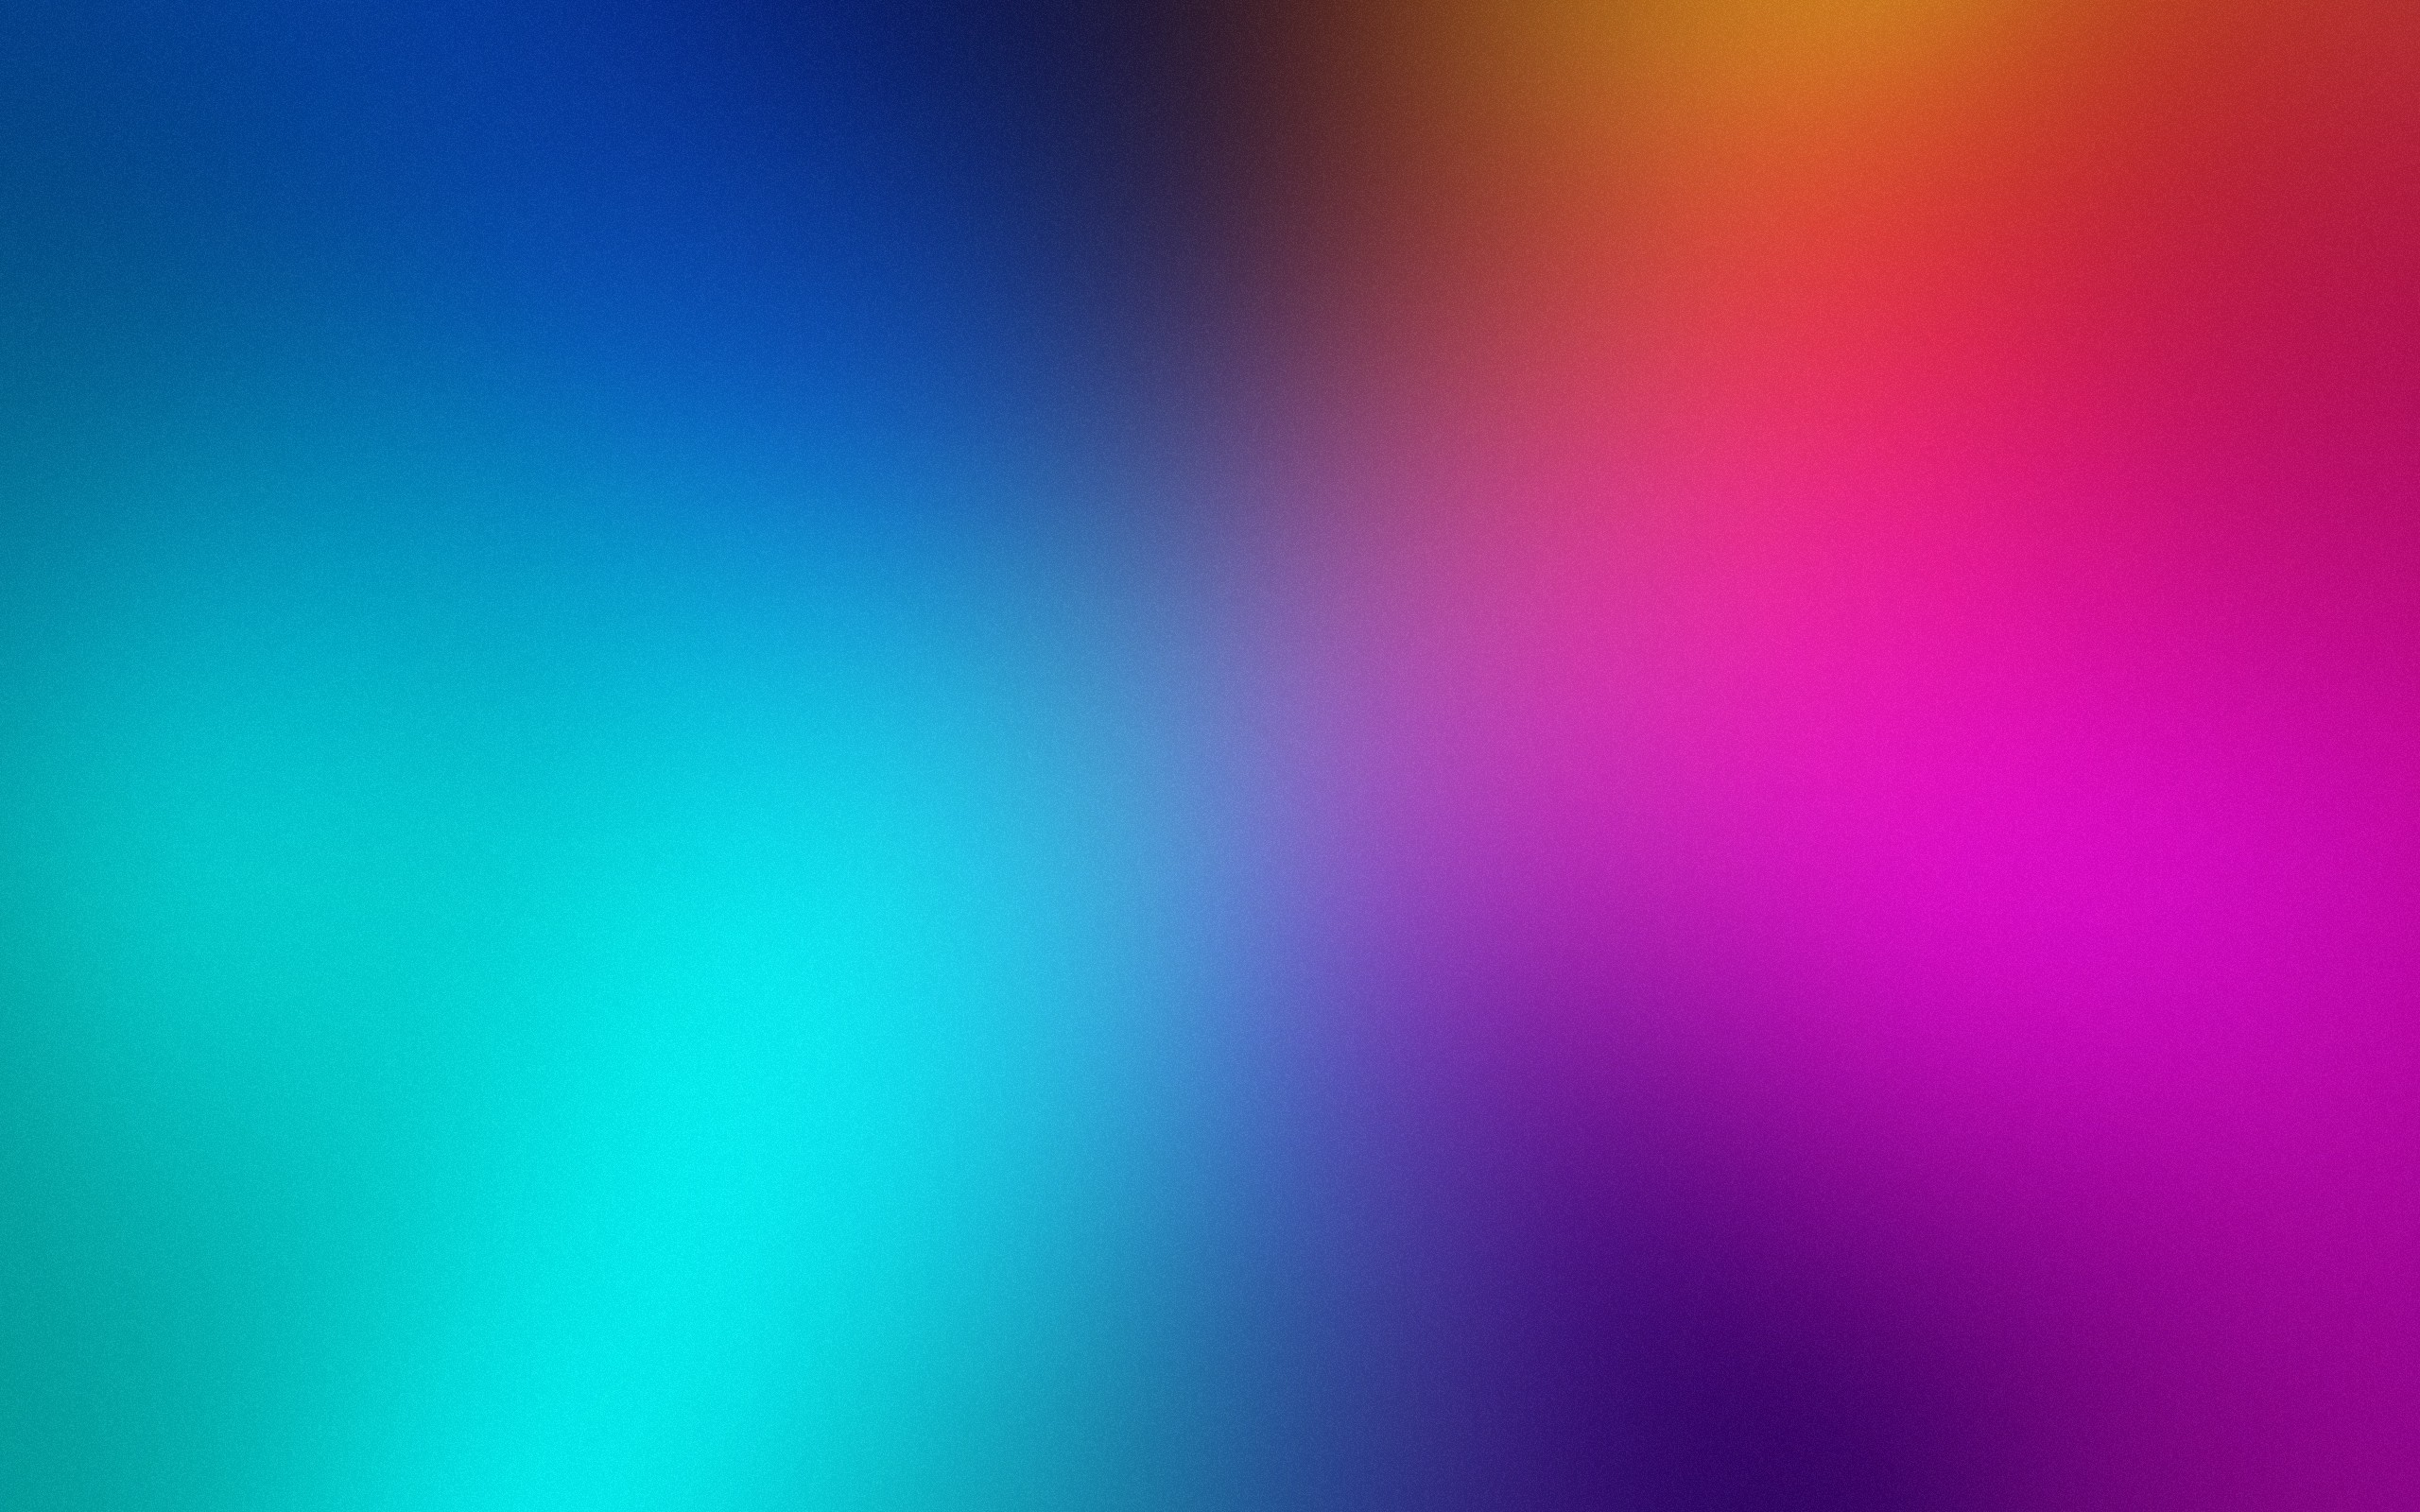 Multicolor Wallpapers 5 - 2560 X 1600 | stmed.net